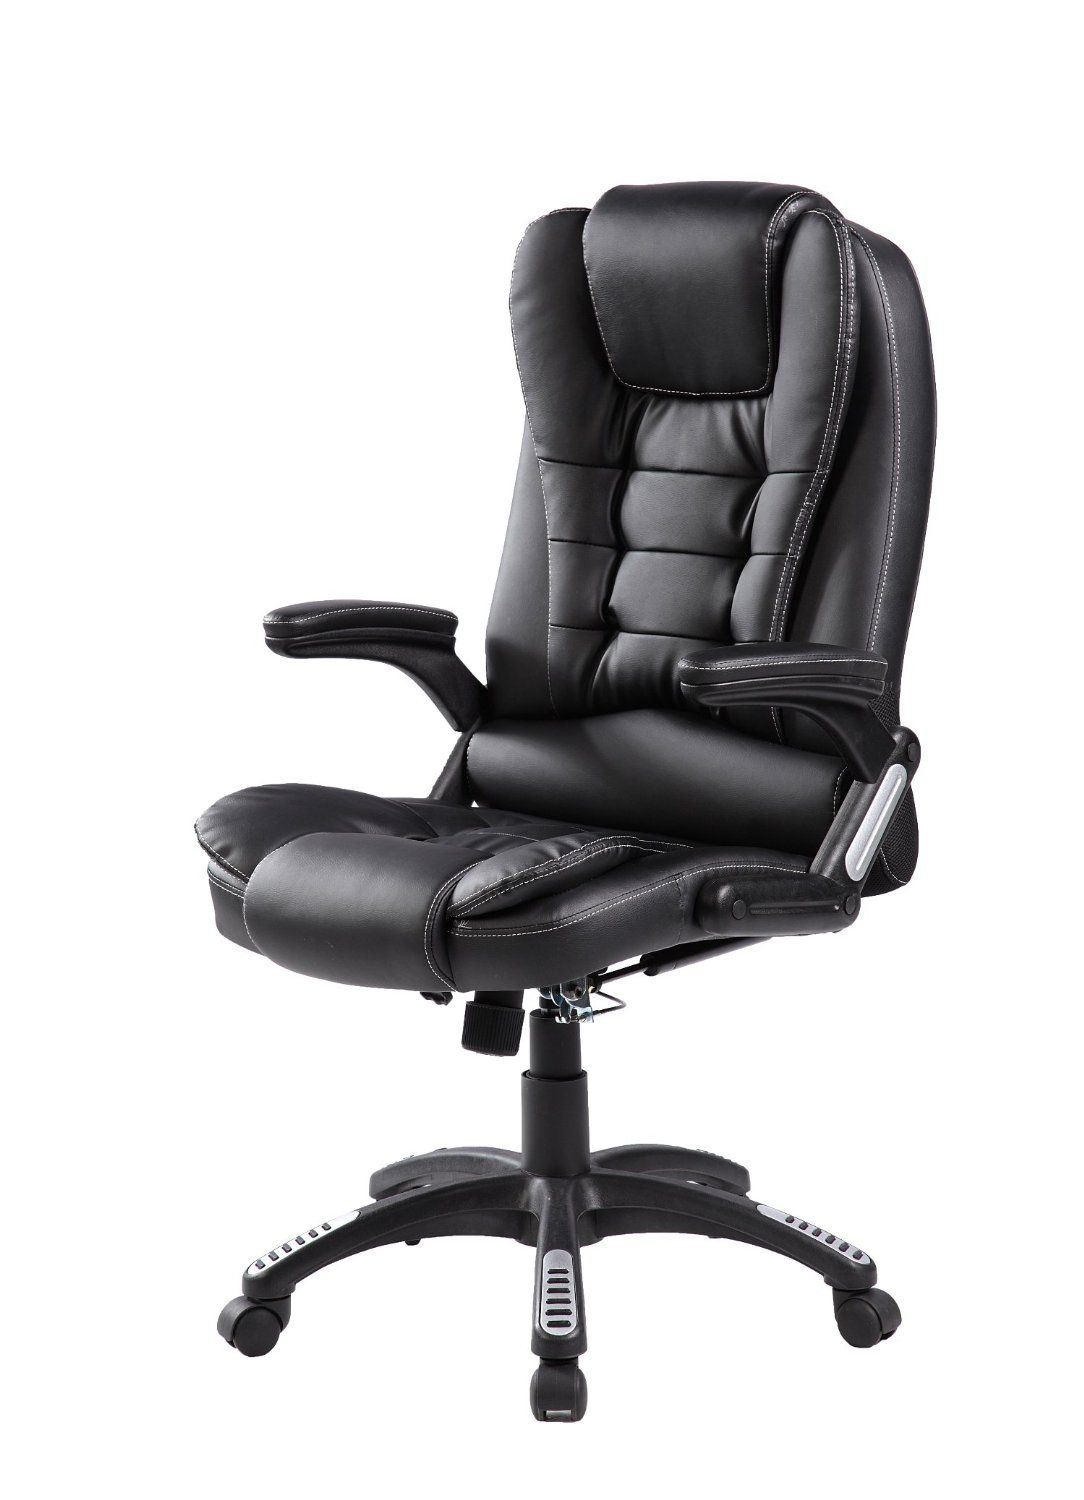 Best Office Desk Chair - American Freight Living Room Set Check more ...